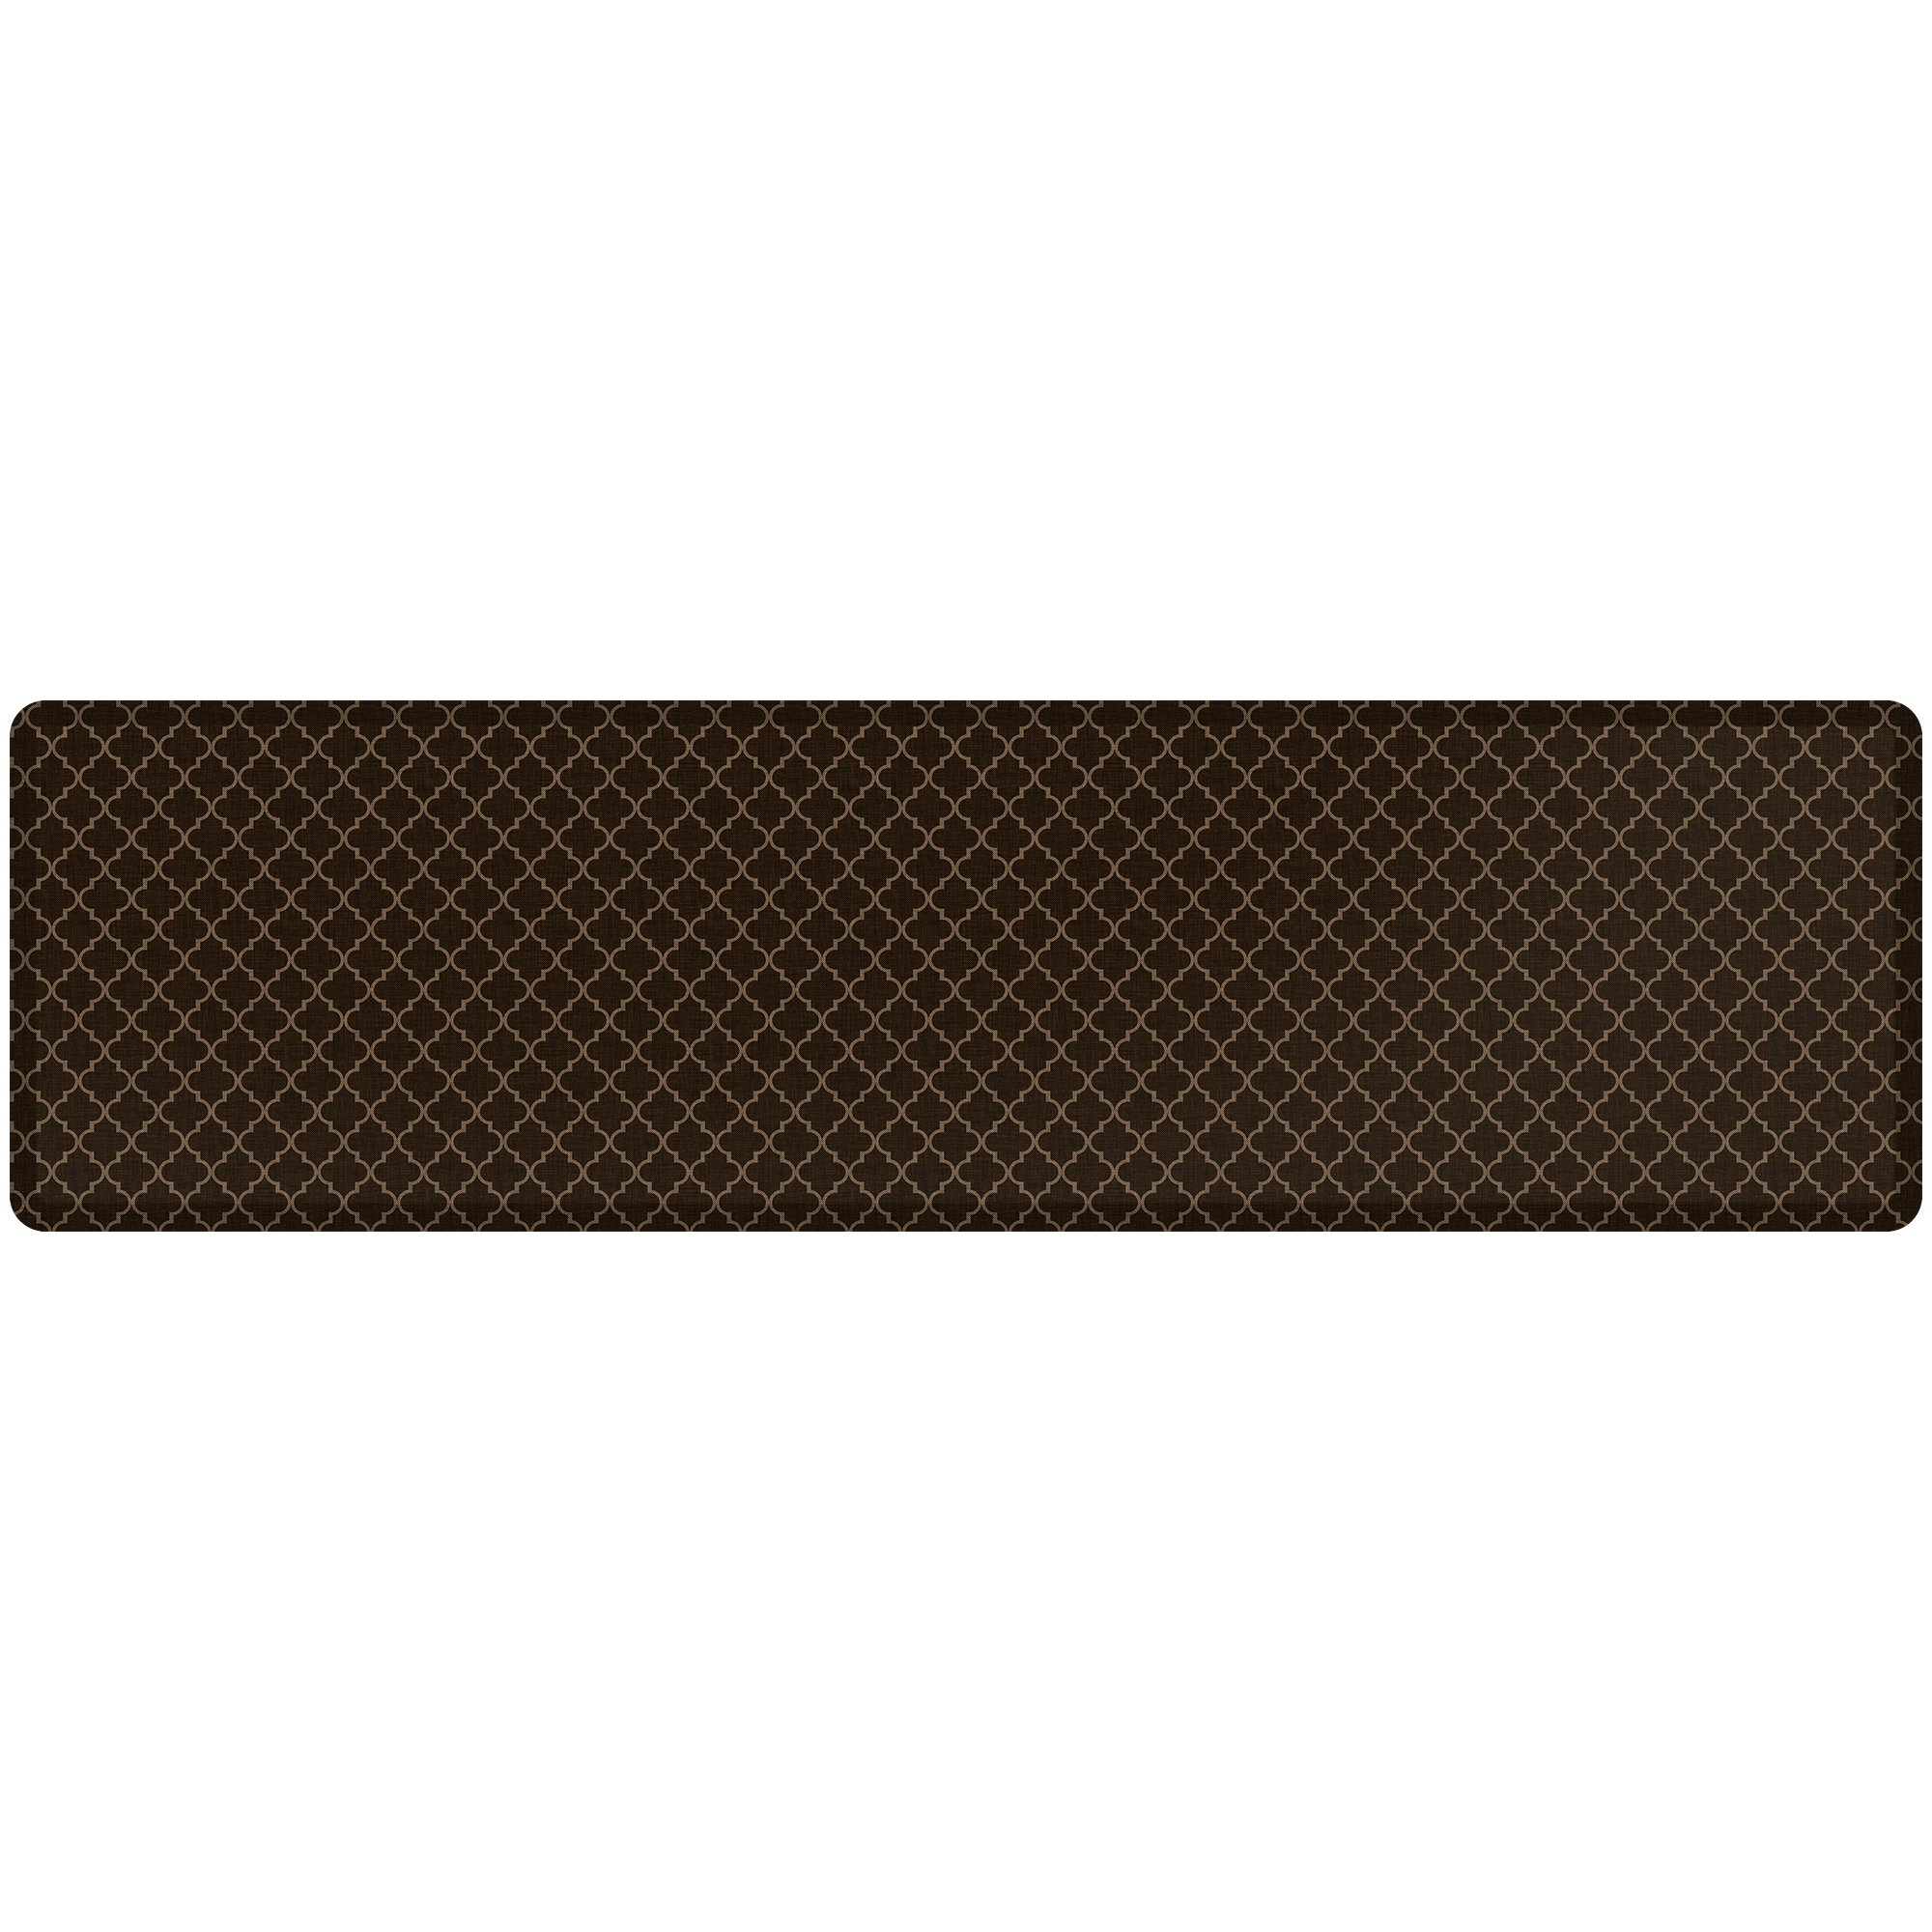 """NewLife by GelPro Anti-Fatigue Designer Comfort Kitchen Floor Mat, 30x108"""", Lattice Java Stain Resistant Surface with 3/4"""" Thick Ergo-foam Core for Health and Wellness"""